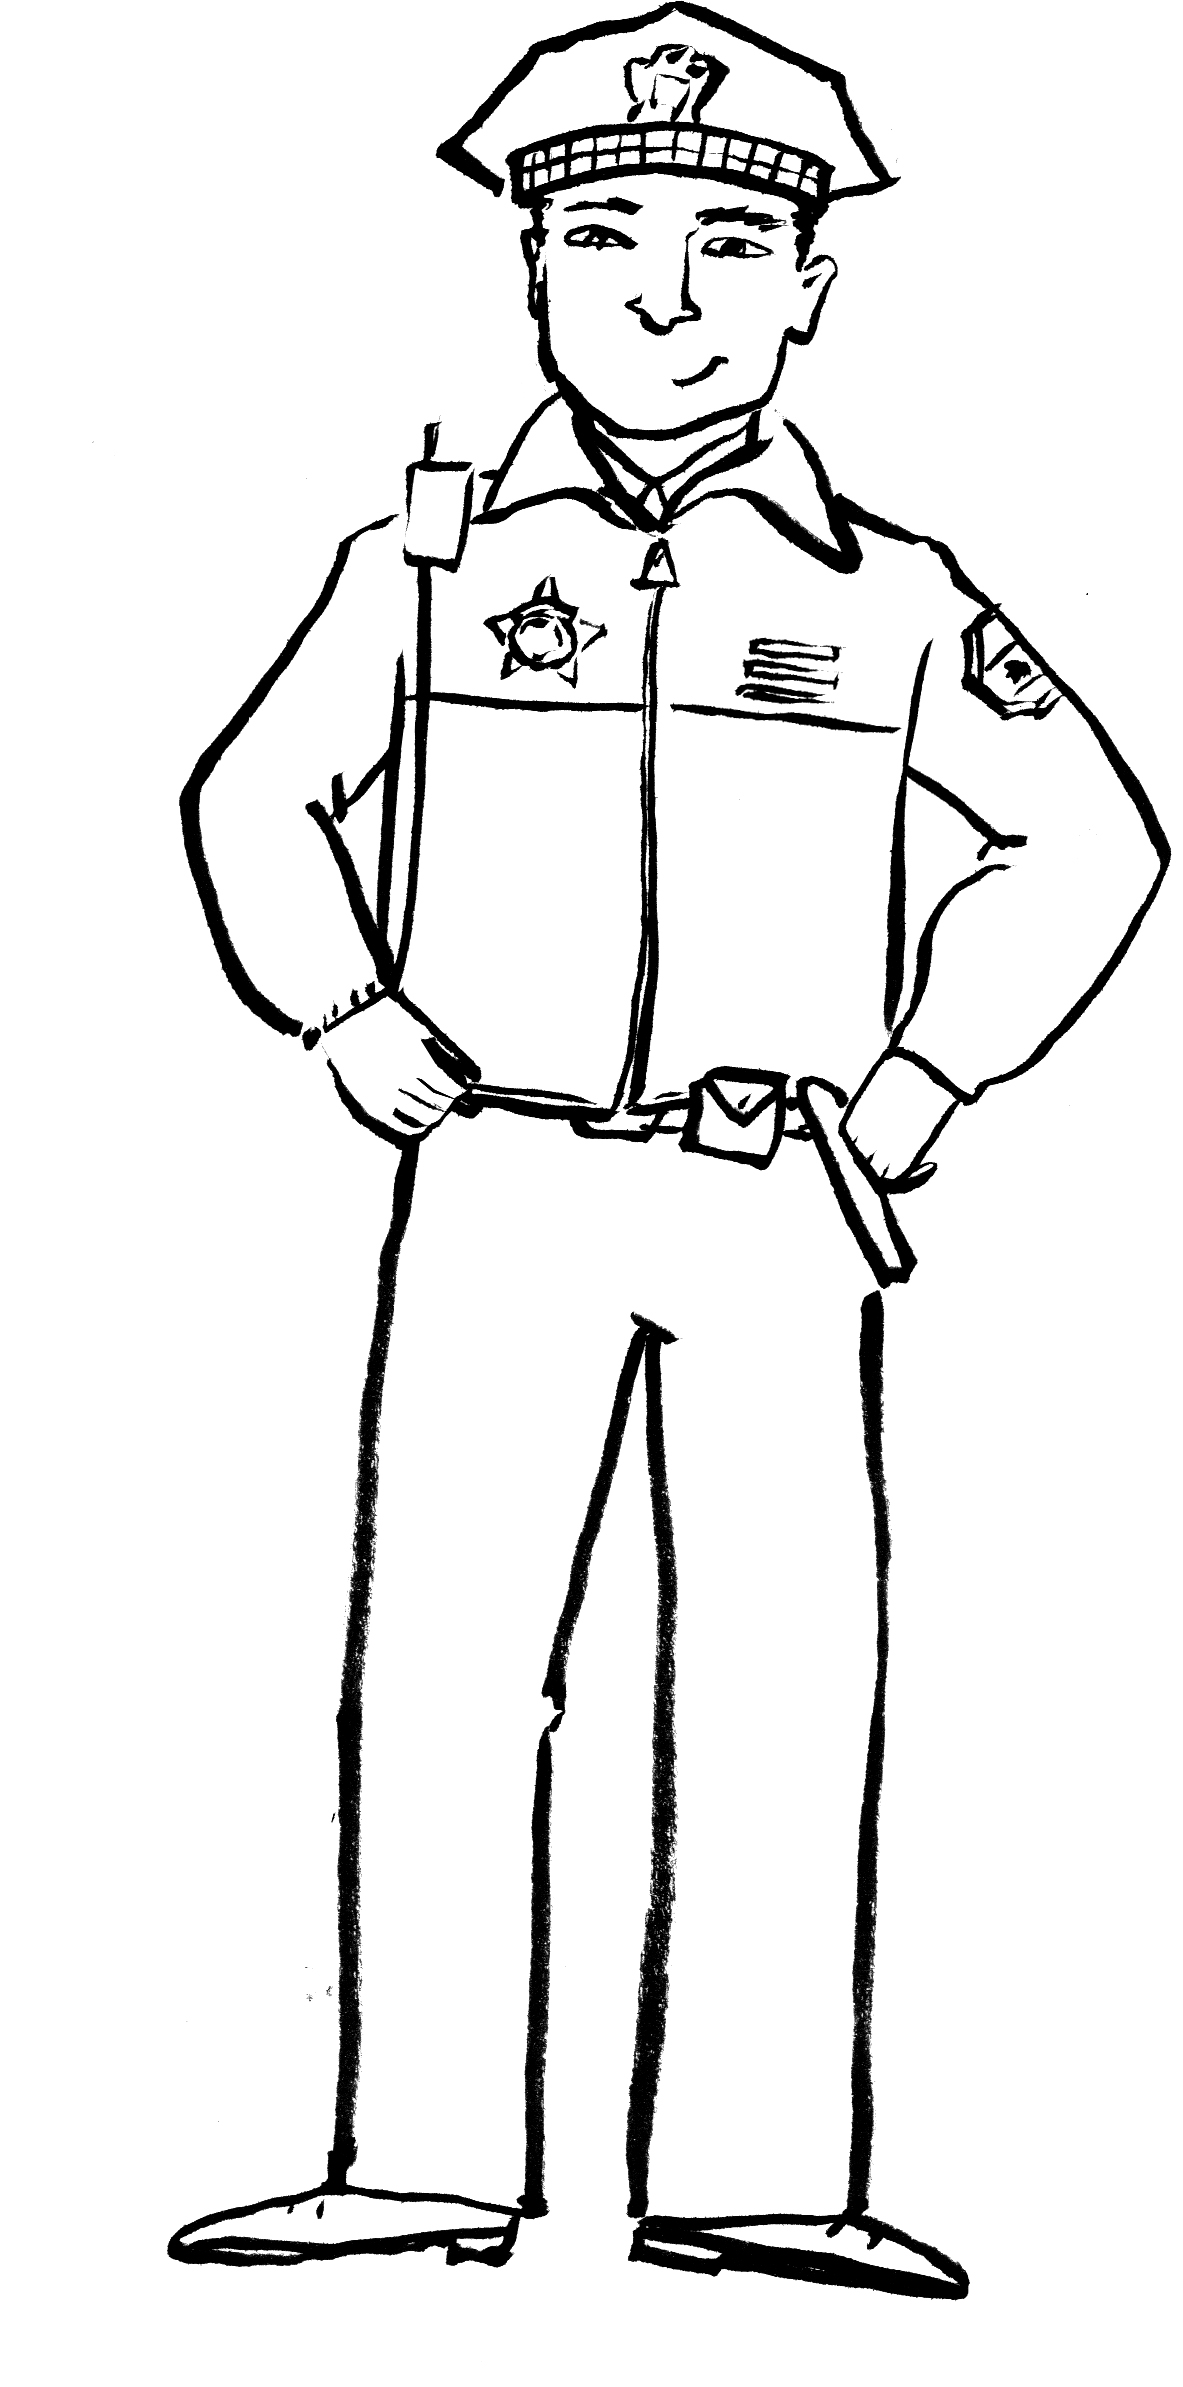 police officer coloring pictures police officer coloring pages clipart panda free police officer coloring pictures